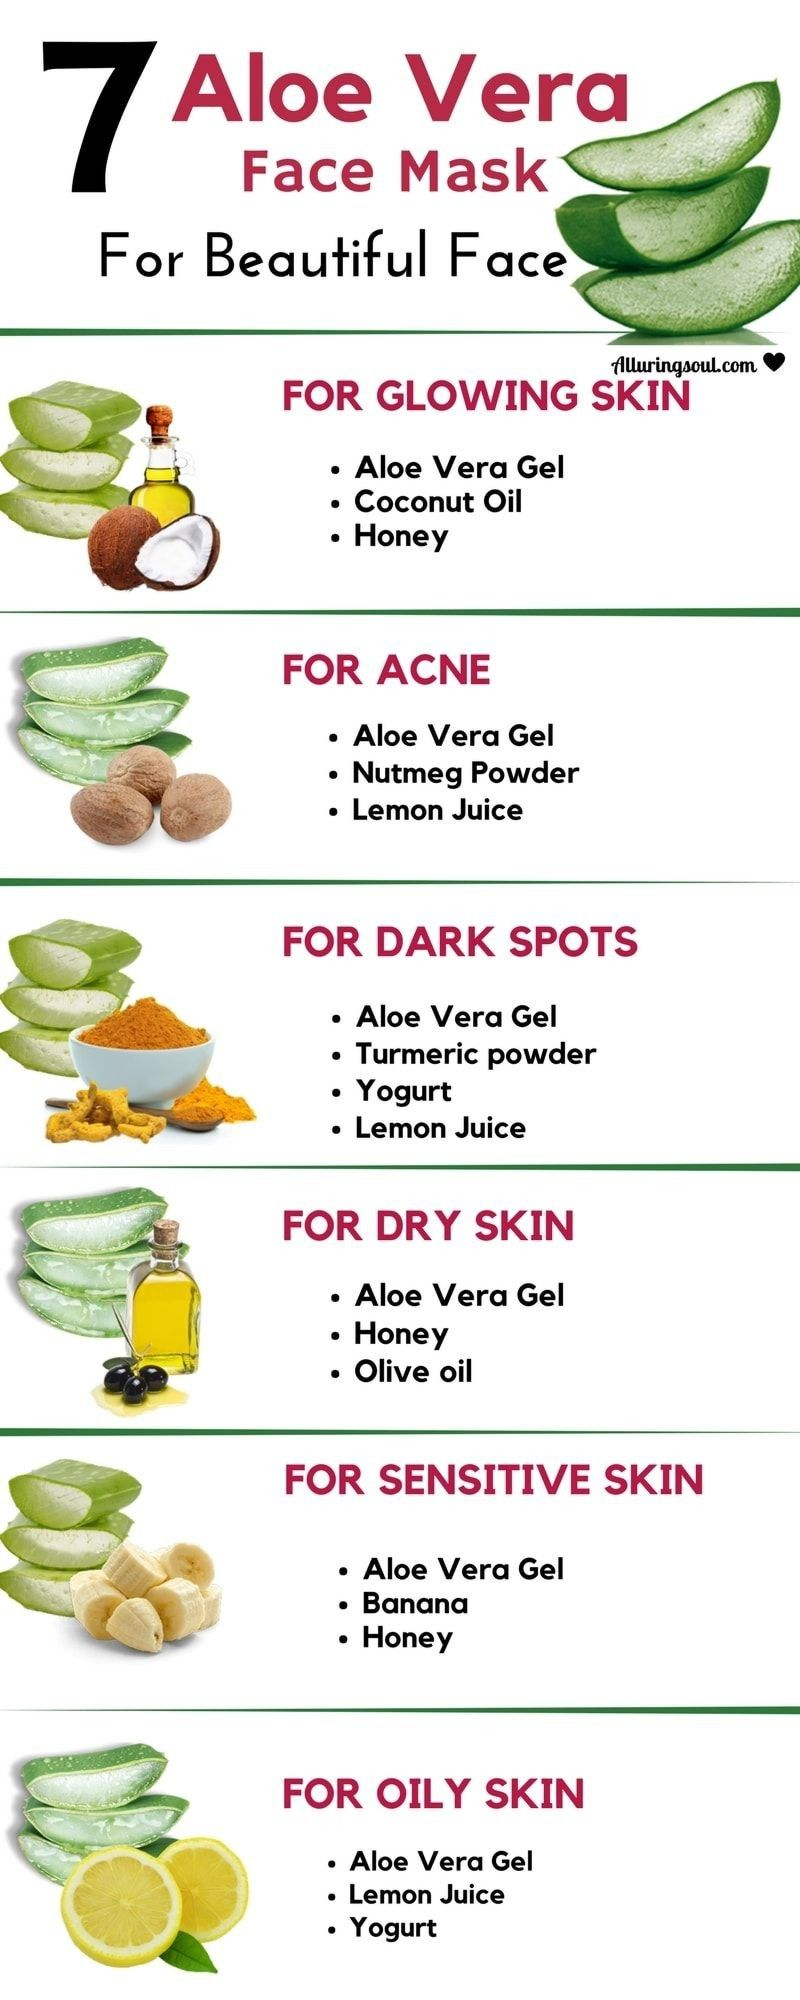 Skin Care Routine Would You Like The Best Tried And True Natural Skin Care Techniques Specia Aloe Vera For Face Aloe Vera Face Mask Anti Aging Skin Products